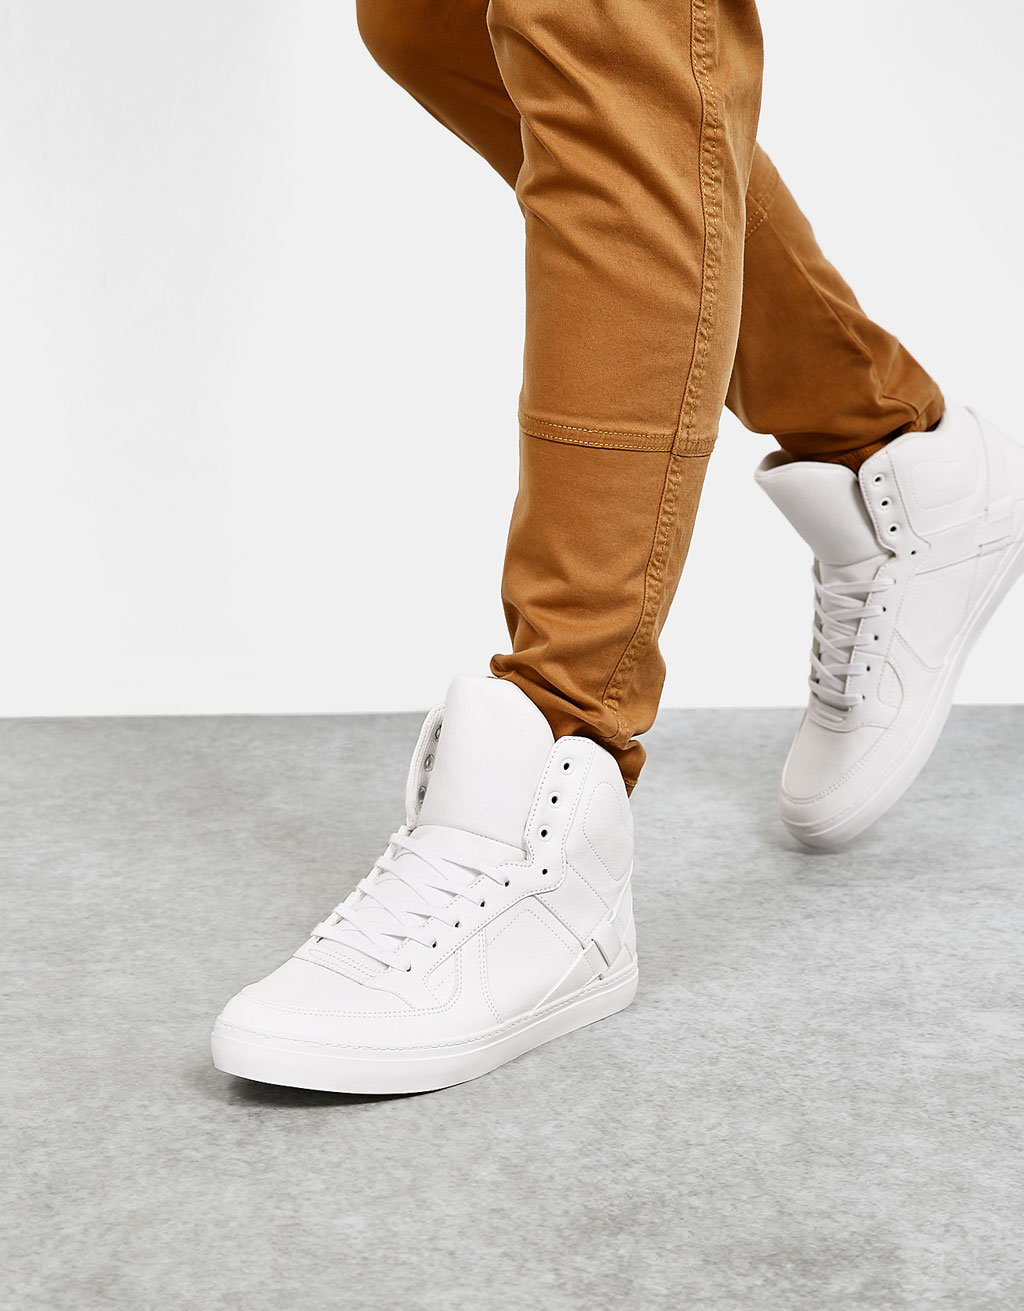 Men's single-colour high tops